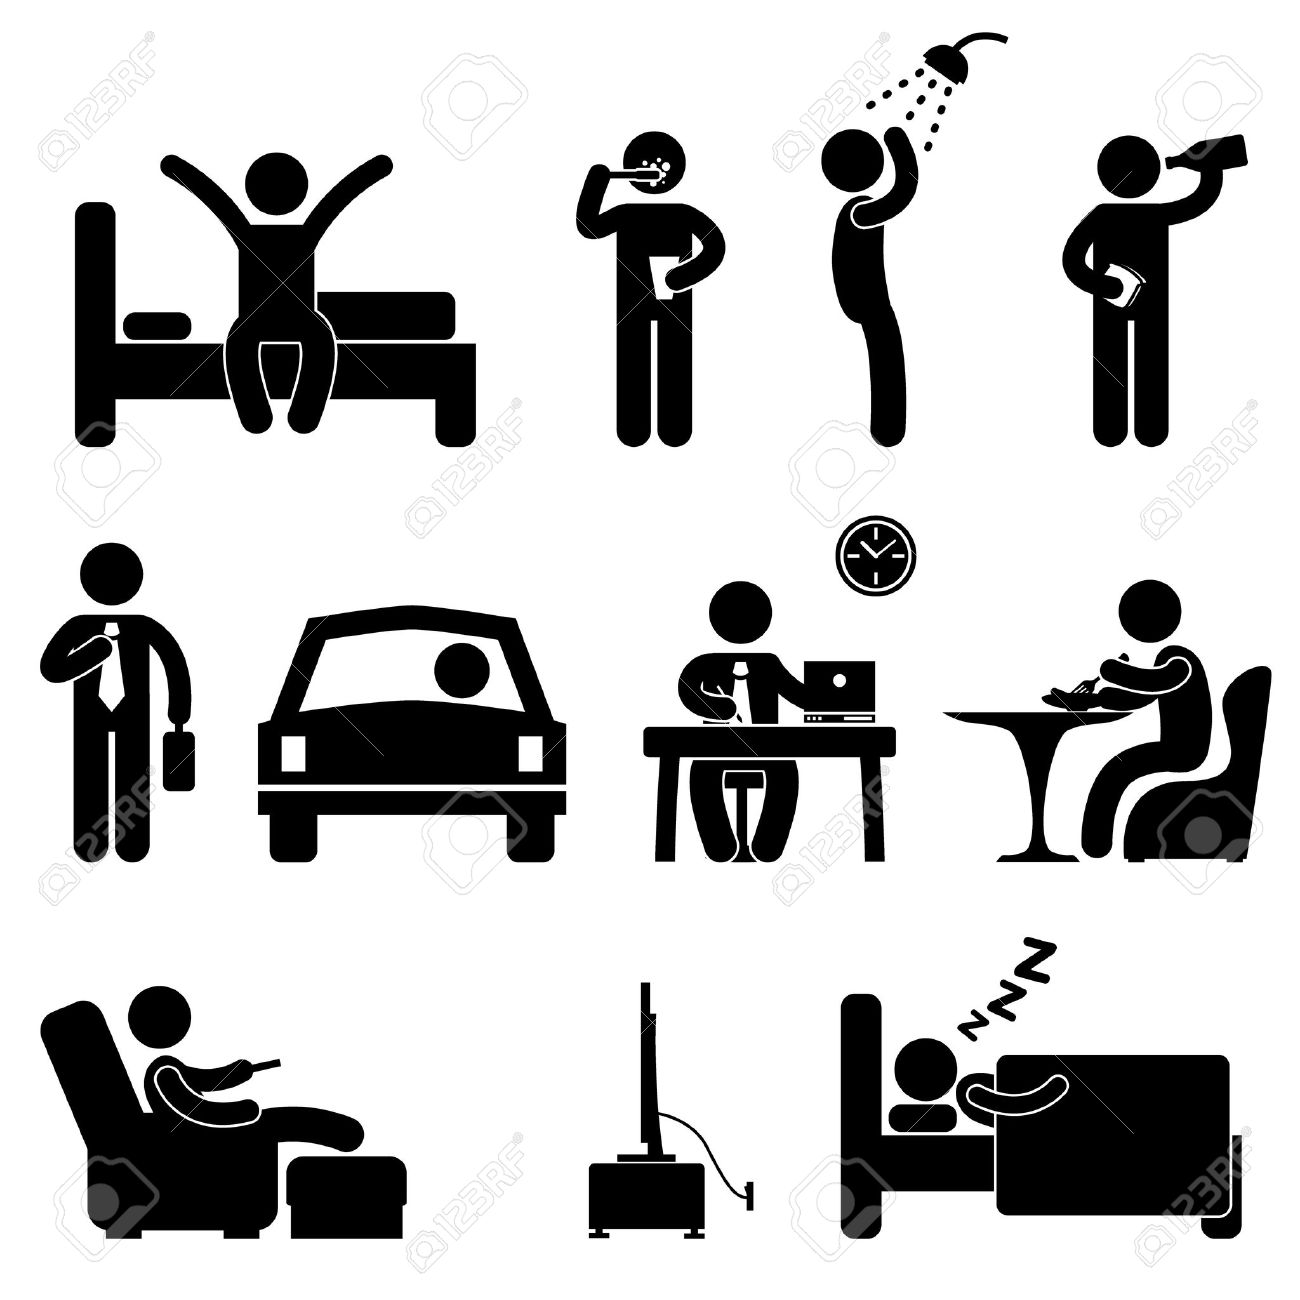 Man Daily Routine People Icon Sign Symbol Pictogram Stock Vector - 11102670